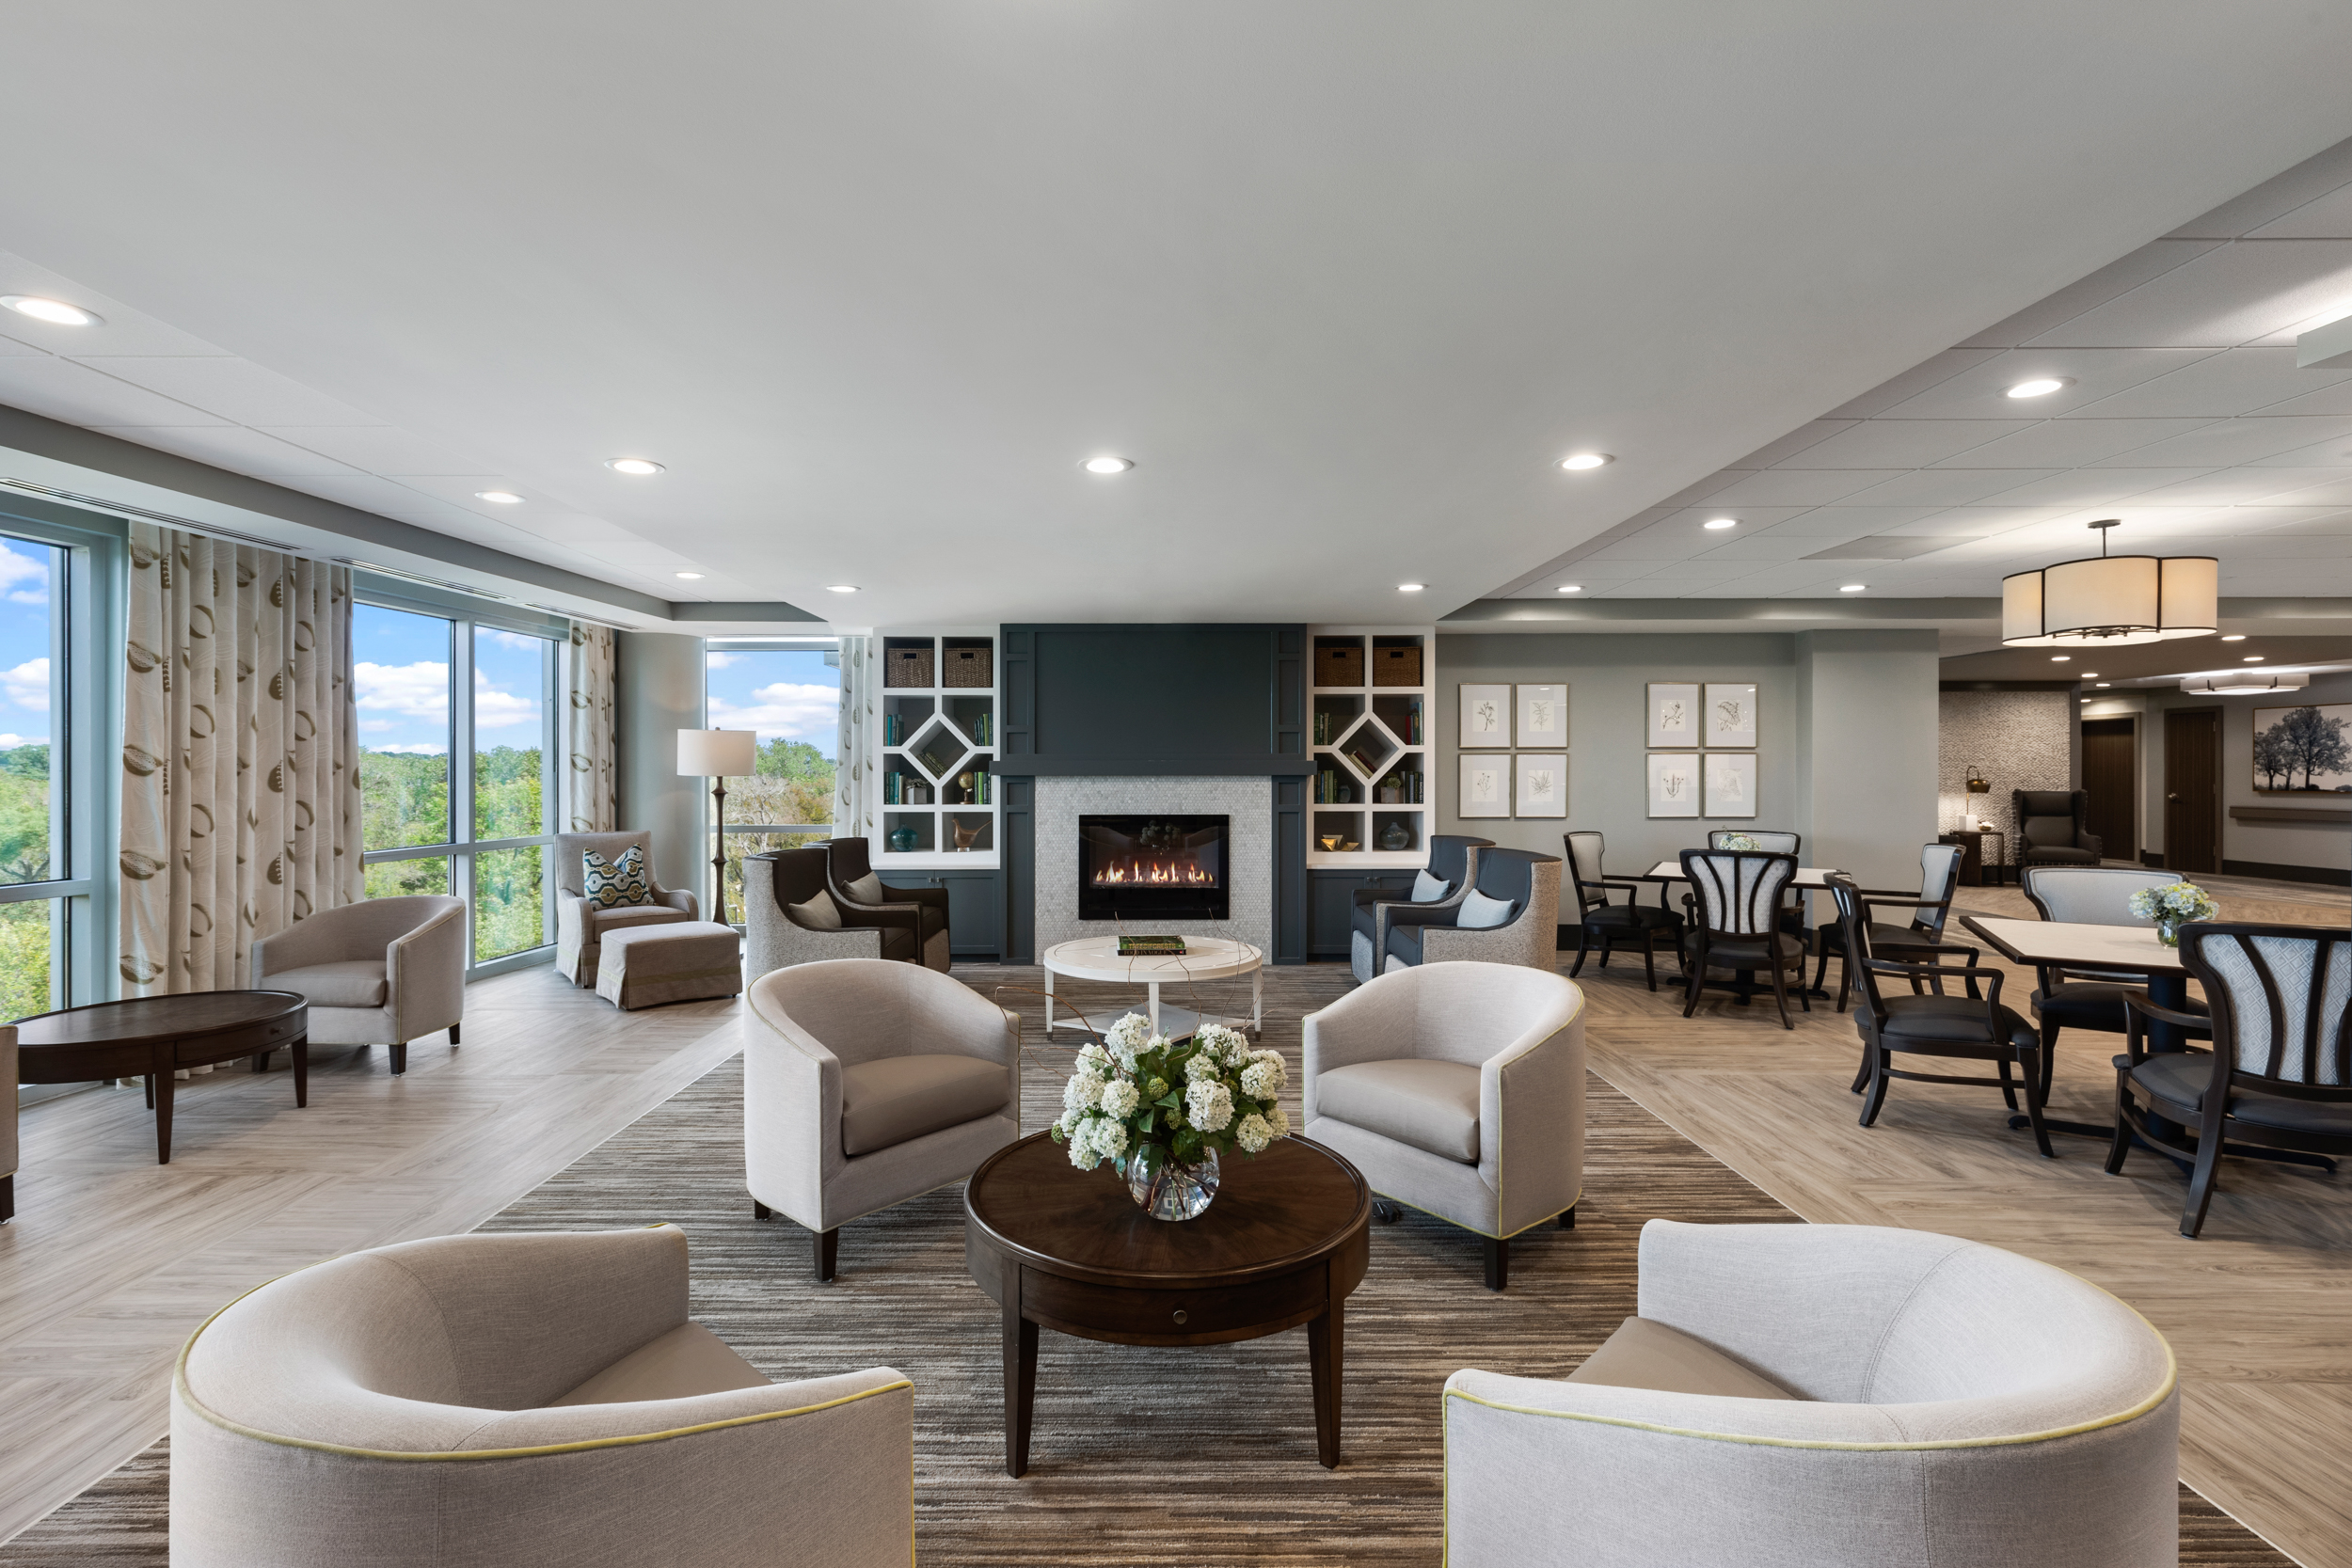 common area inside the vista featuring chairs, tables, and a fireplace